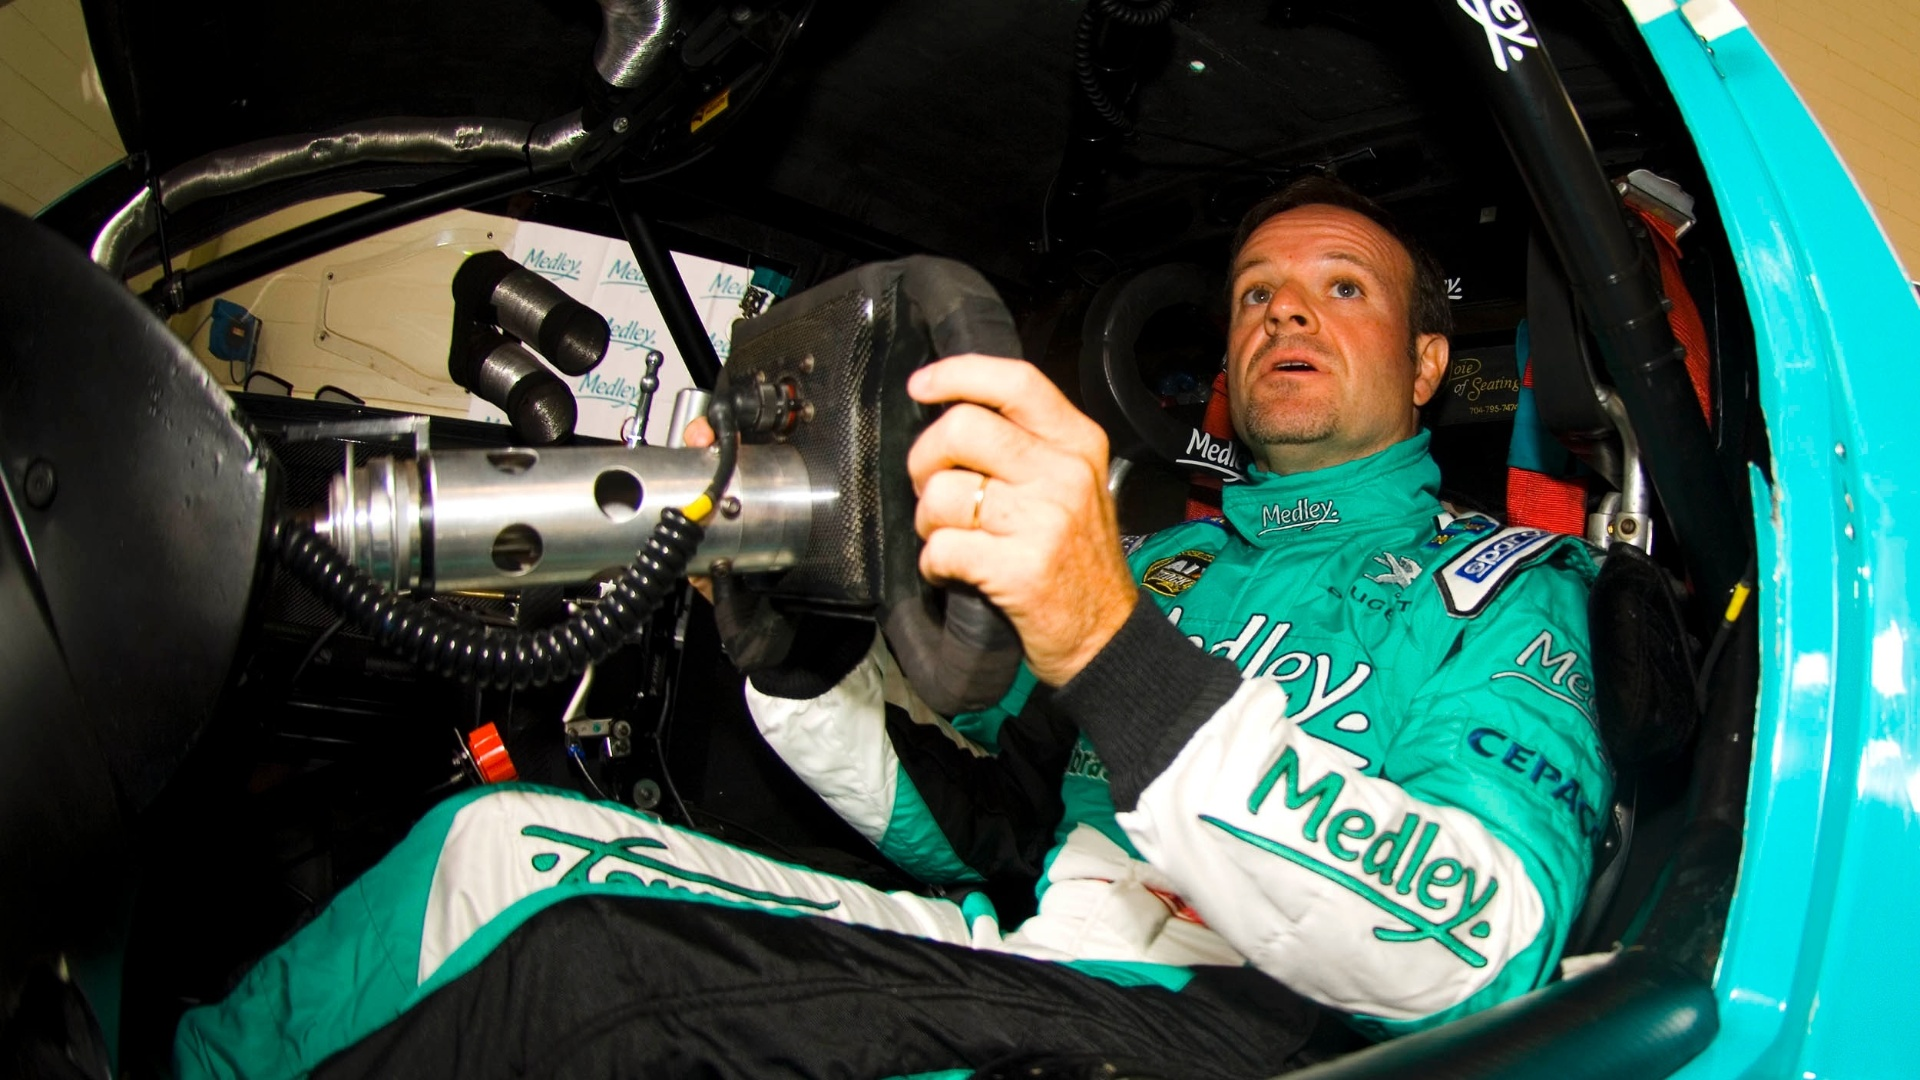 Rubens Barrichello experimenta o cockpit do carro da equipe Full Time durante anncio de sua participao na Corrida do Milho da Stock Car (24/09/2012)